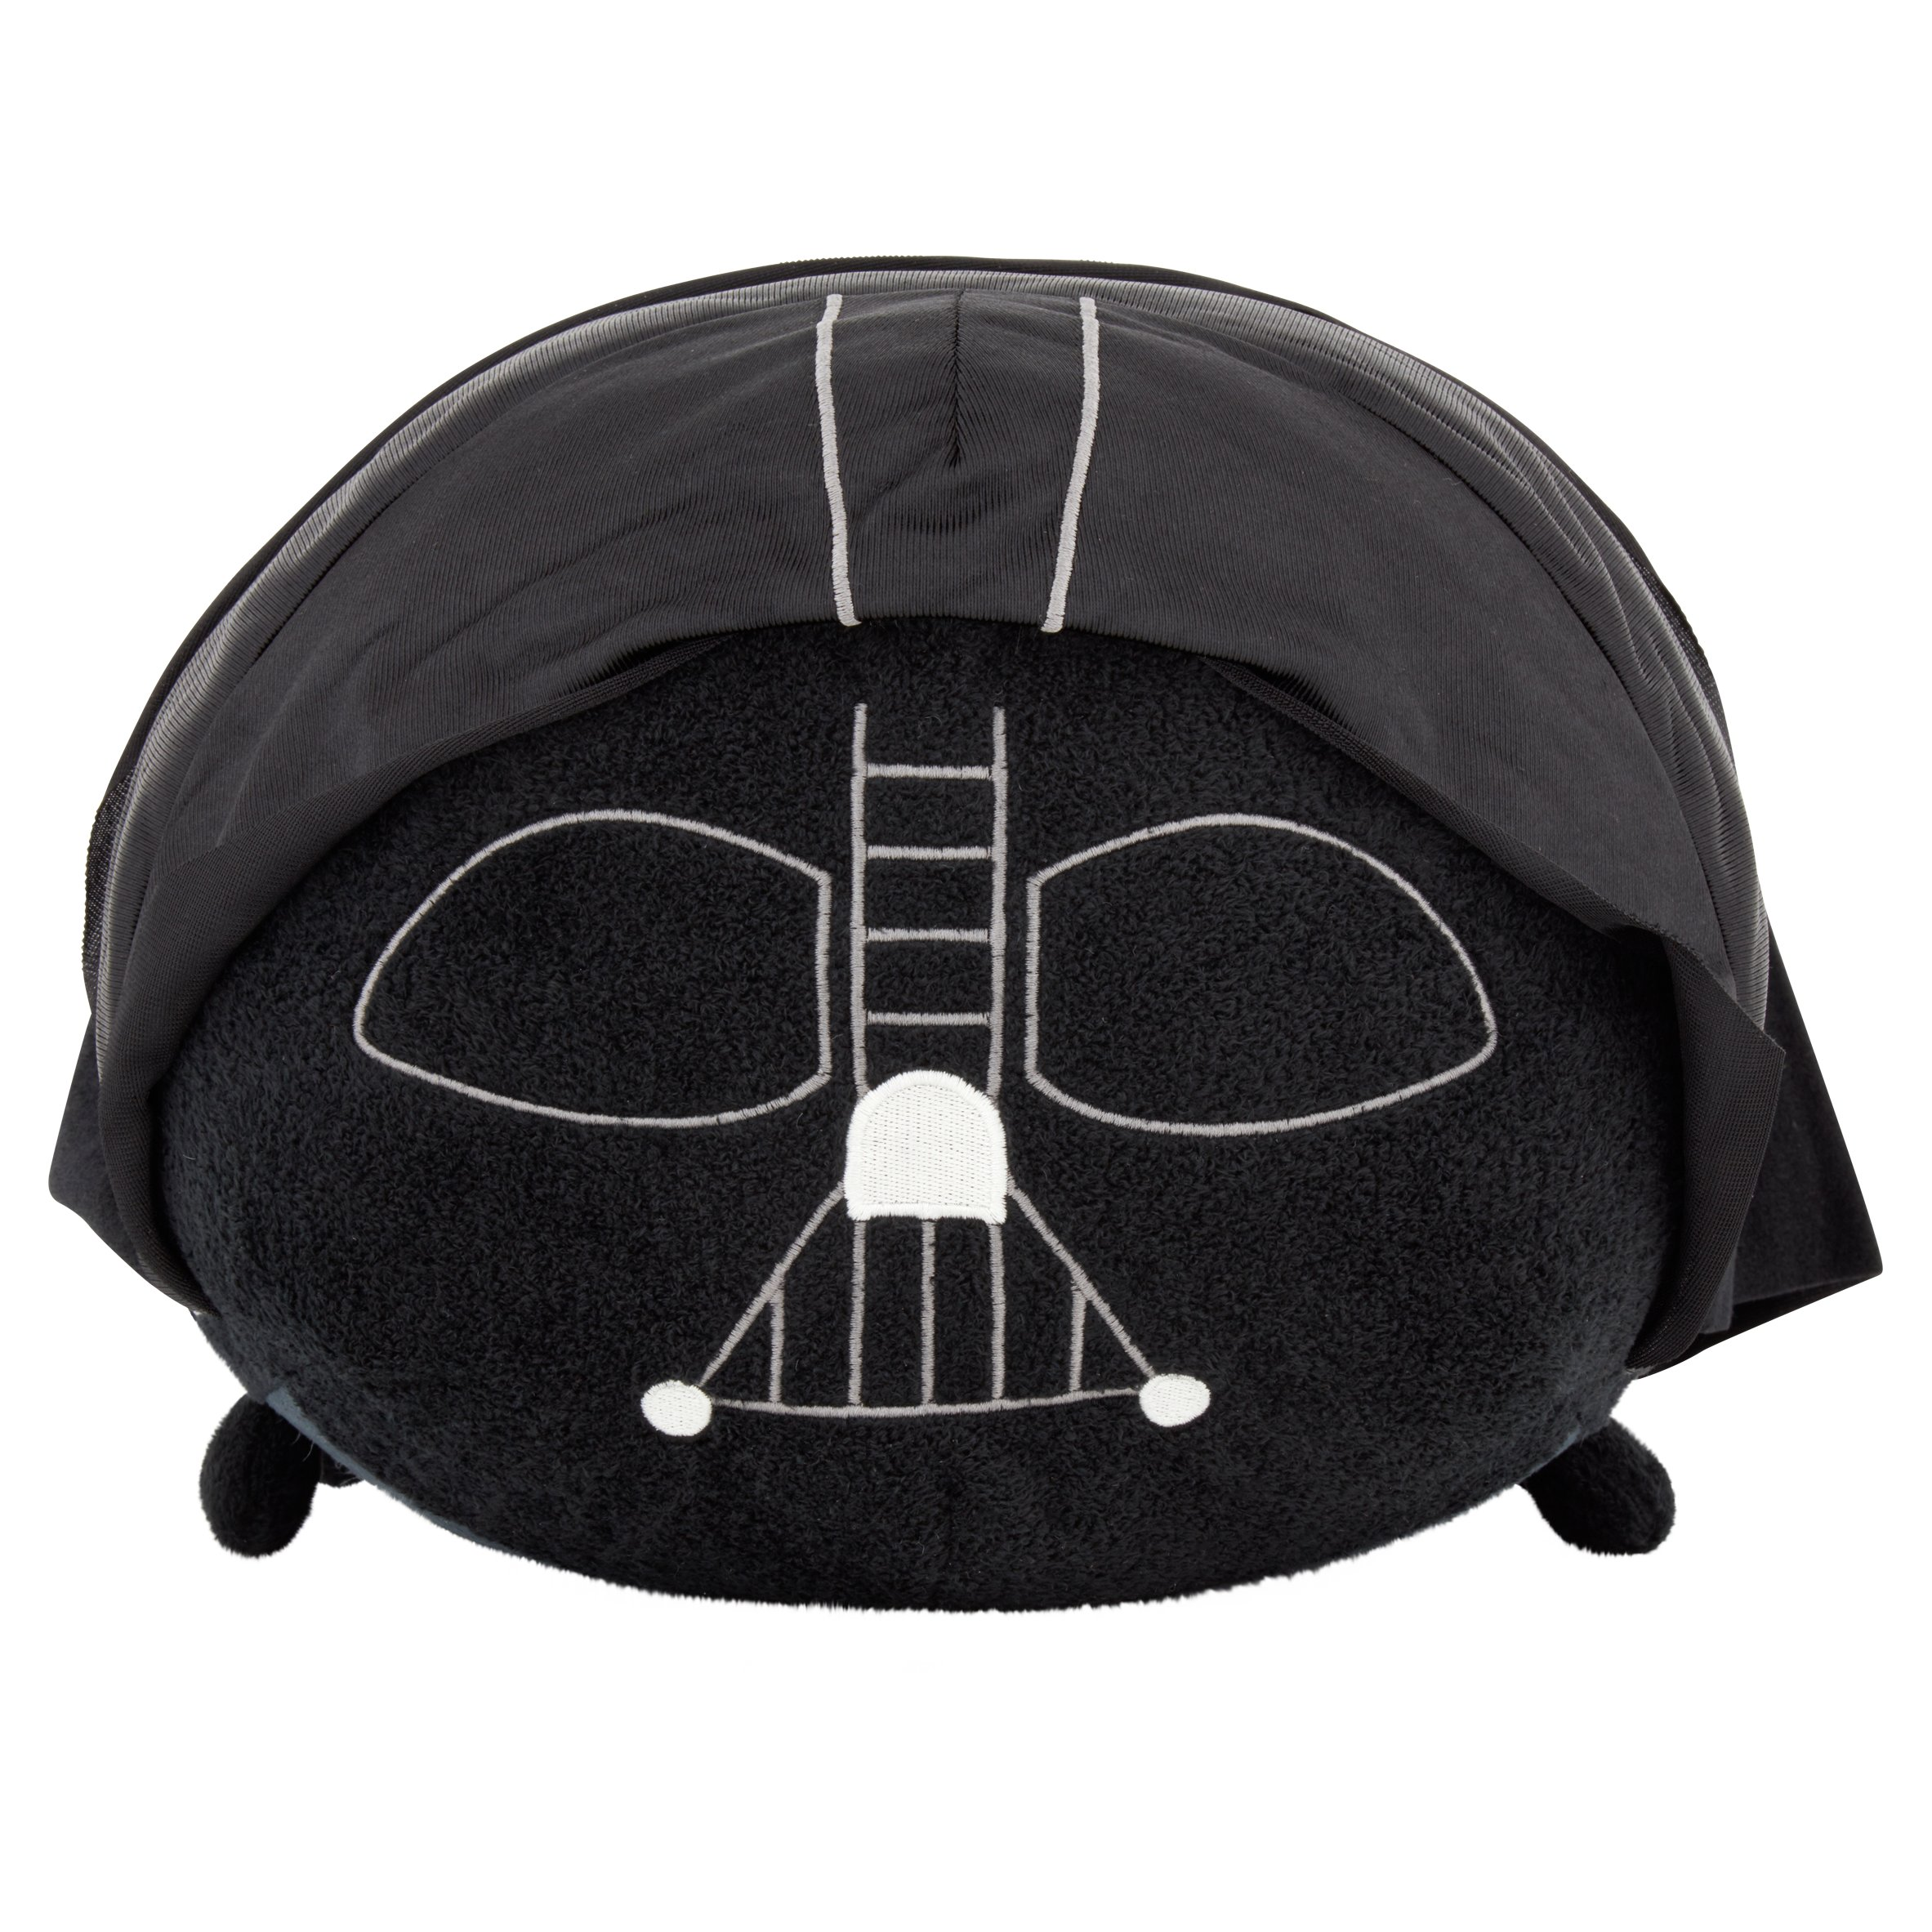 "Disney Star Wars Darth Vader Tsum Tsum 20"" Plush"